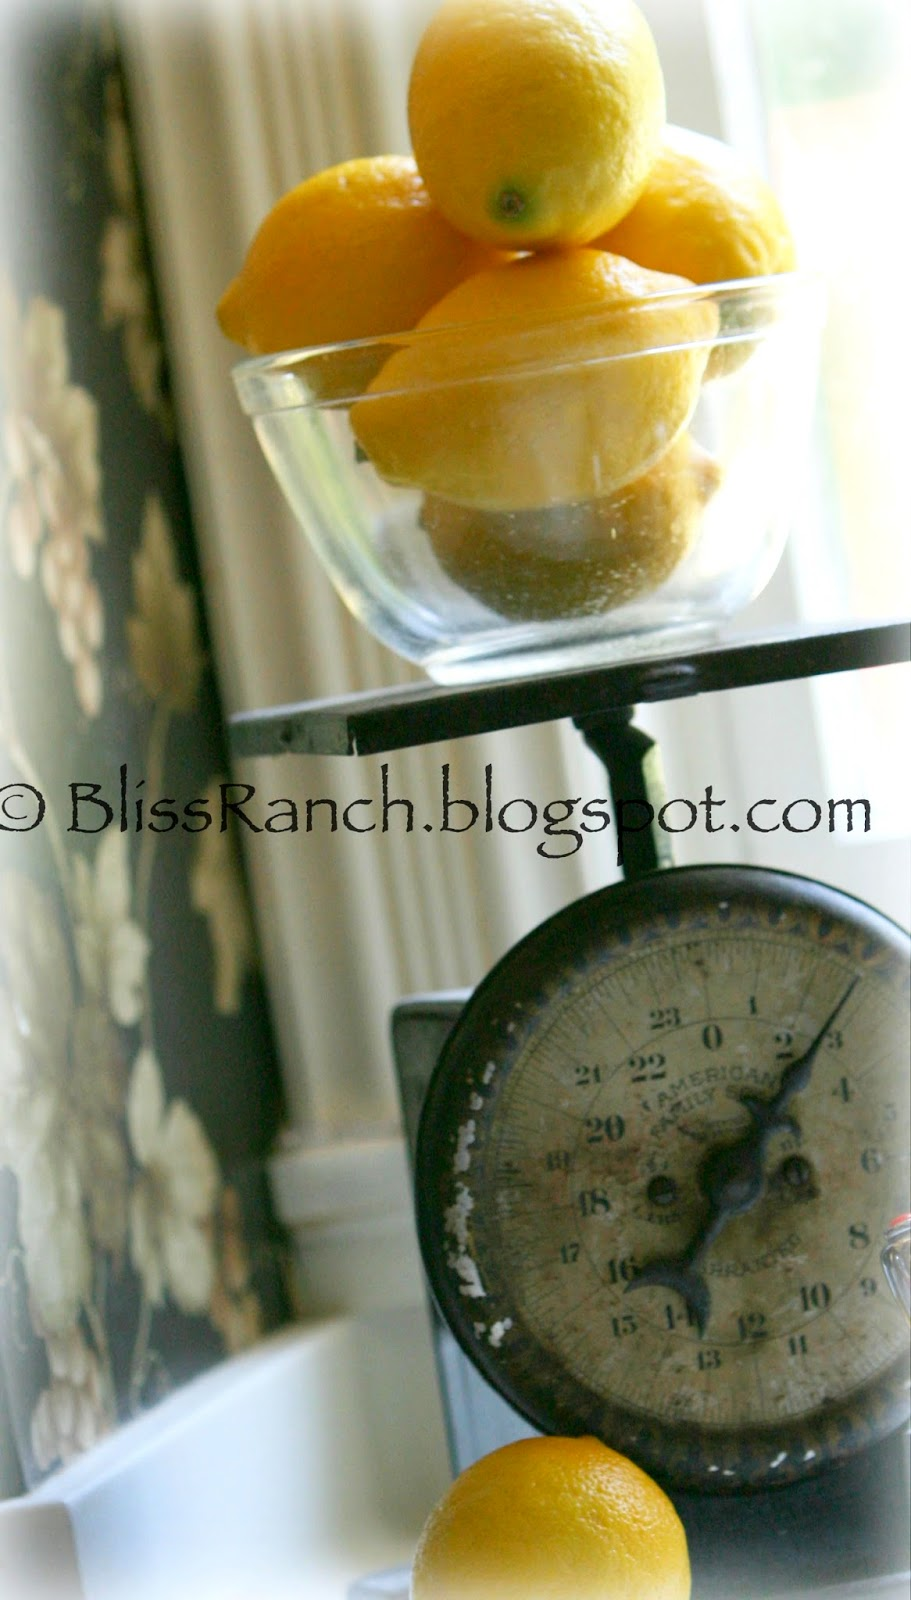 From My Front Porch To Yours- How I Found my Style Sundays-Vintage Scale Bliss-Ranch.com